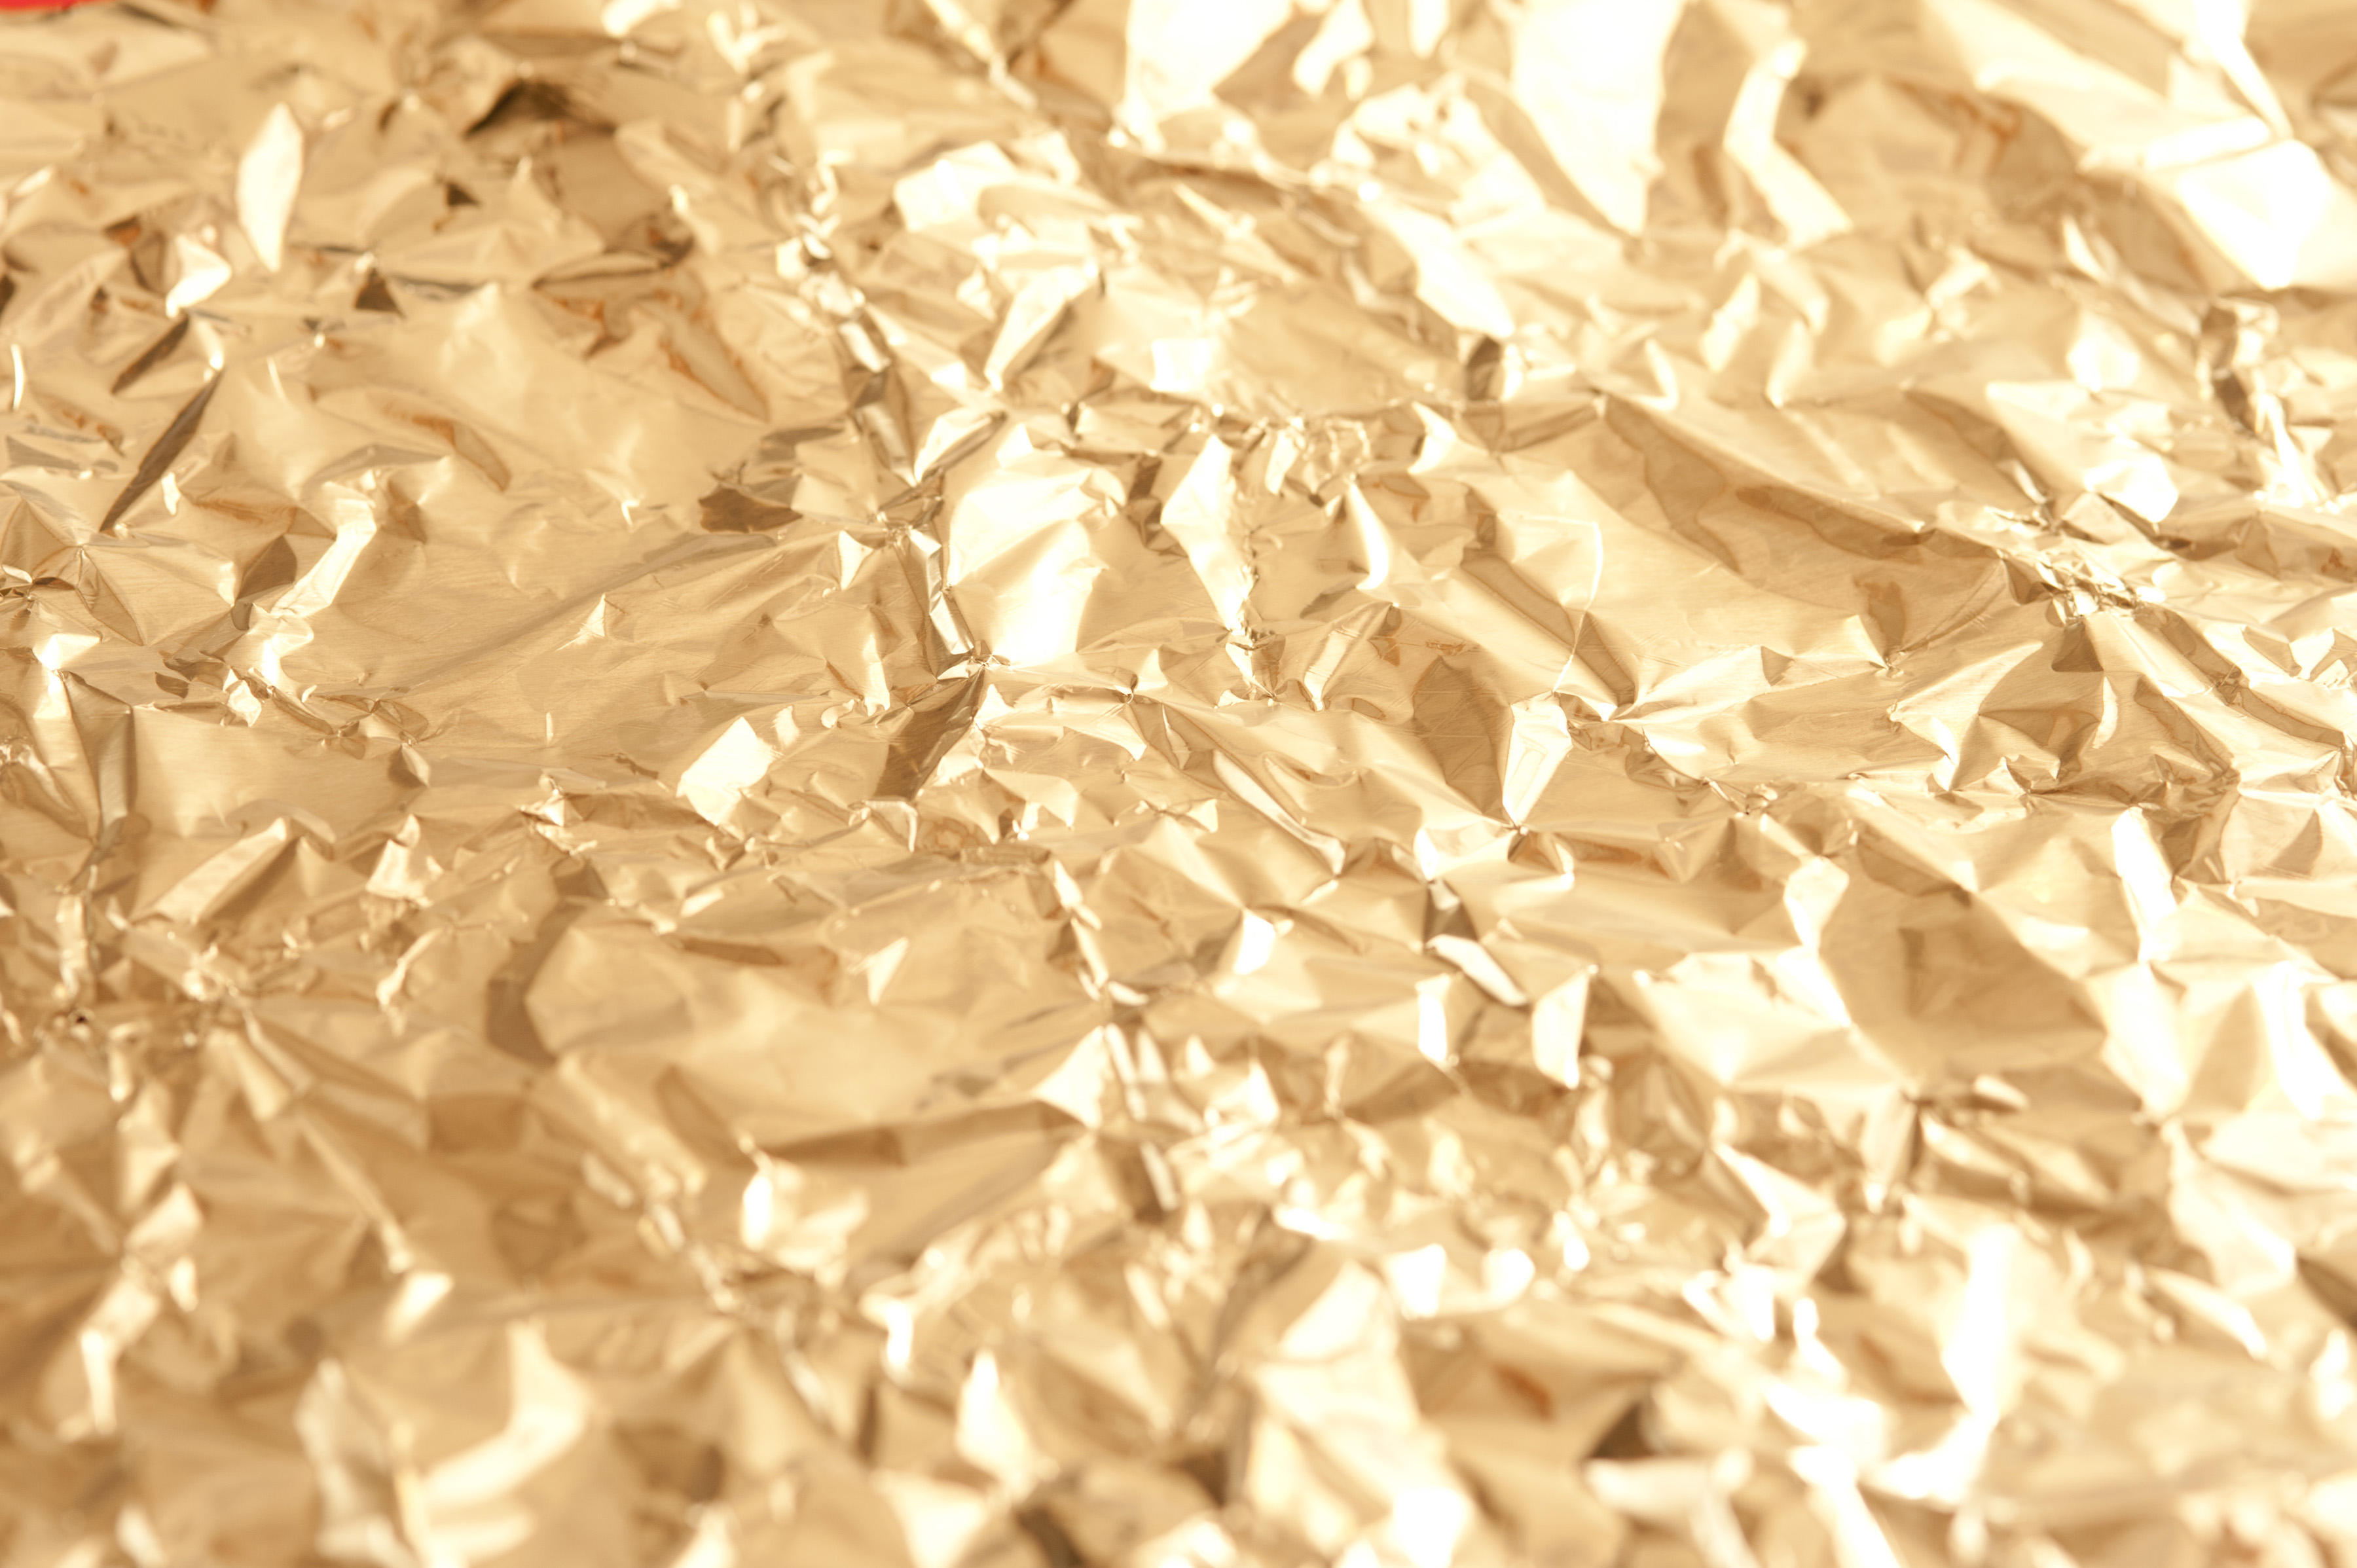 Full Frame Background Image of Luxurious and Festive Shining Golden Crinkled Foil